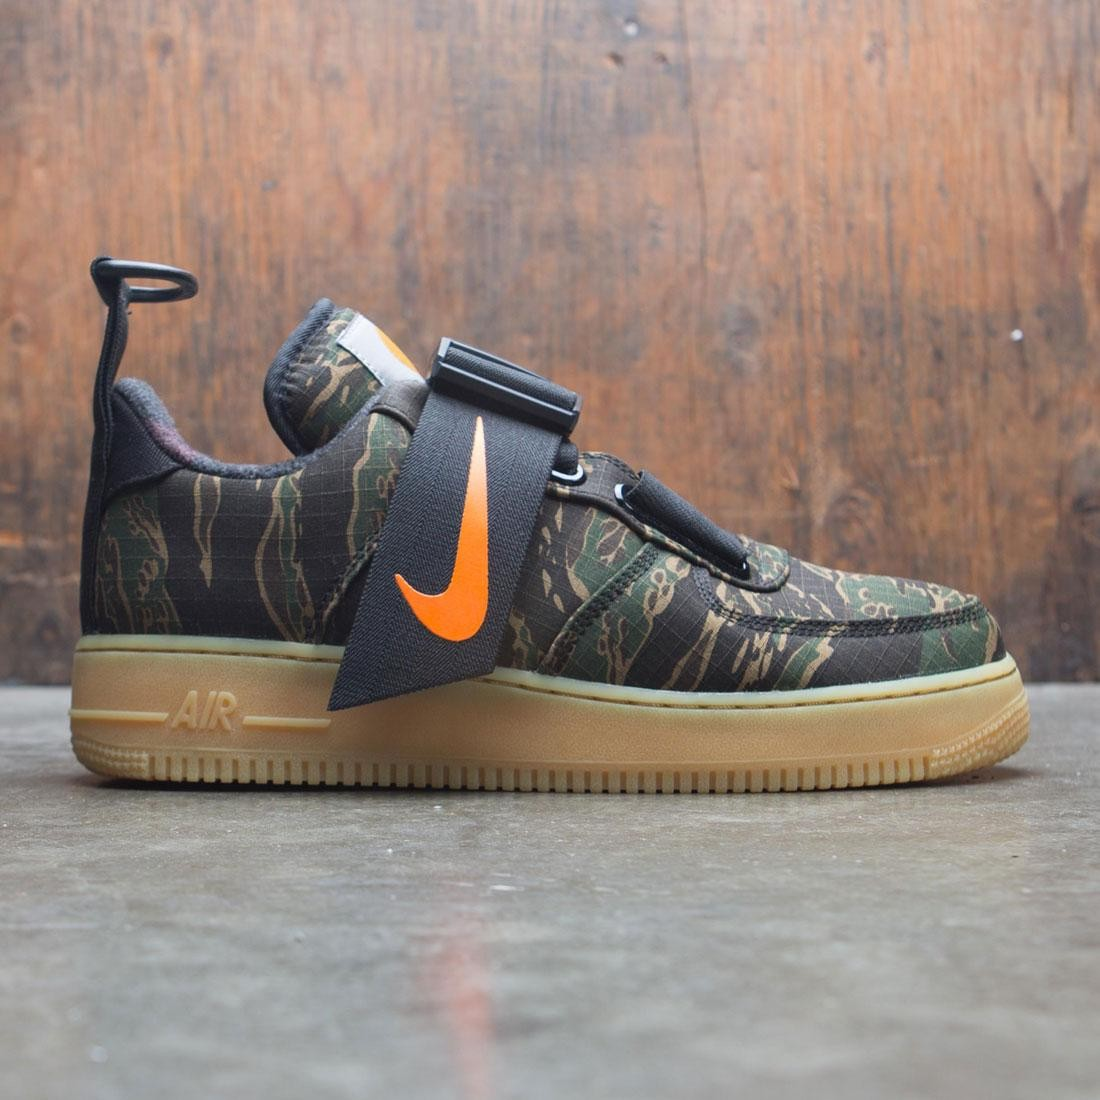 Nike x Carhartt Men Air Force 1 Ut Low Prm Wip (camo green / total orange-gum light brown)